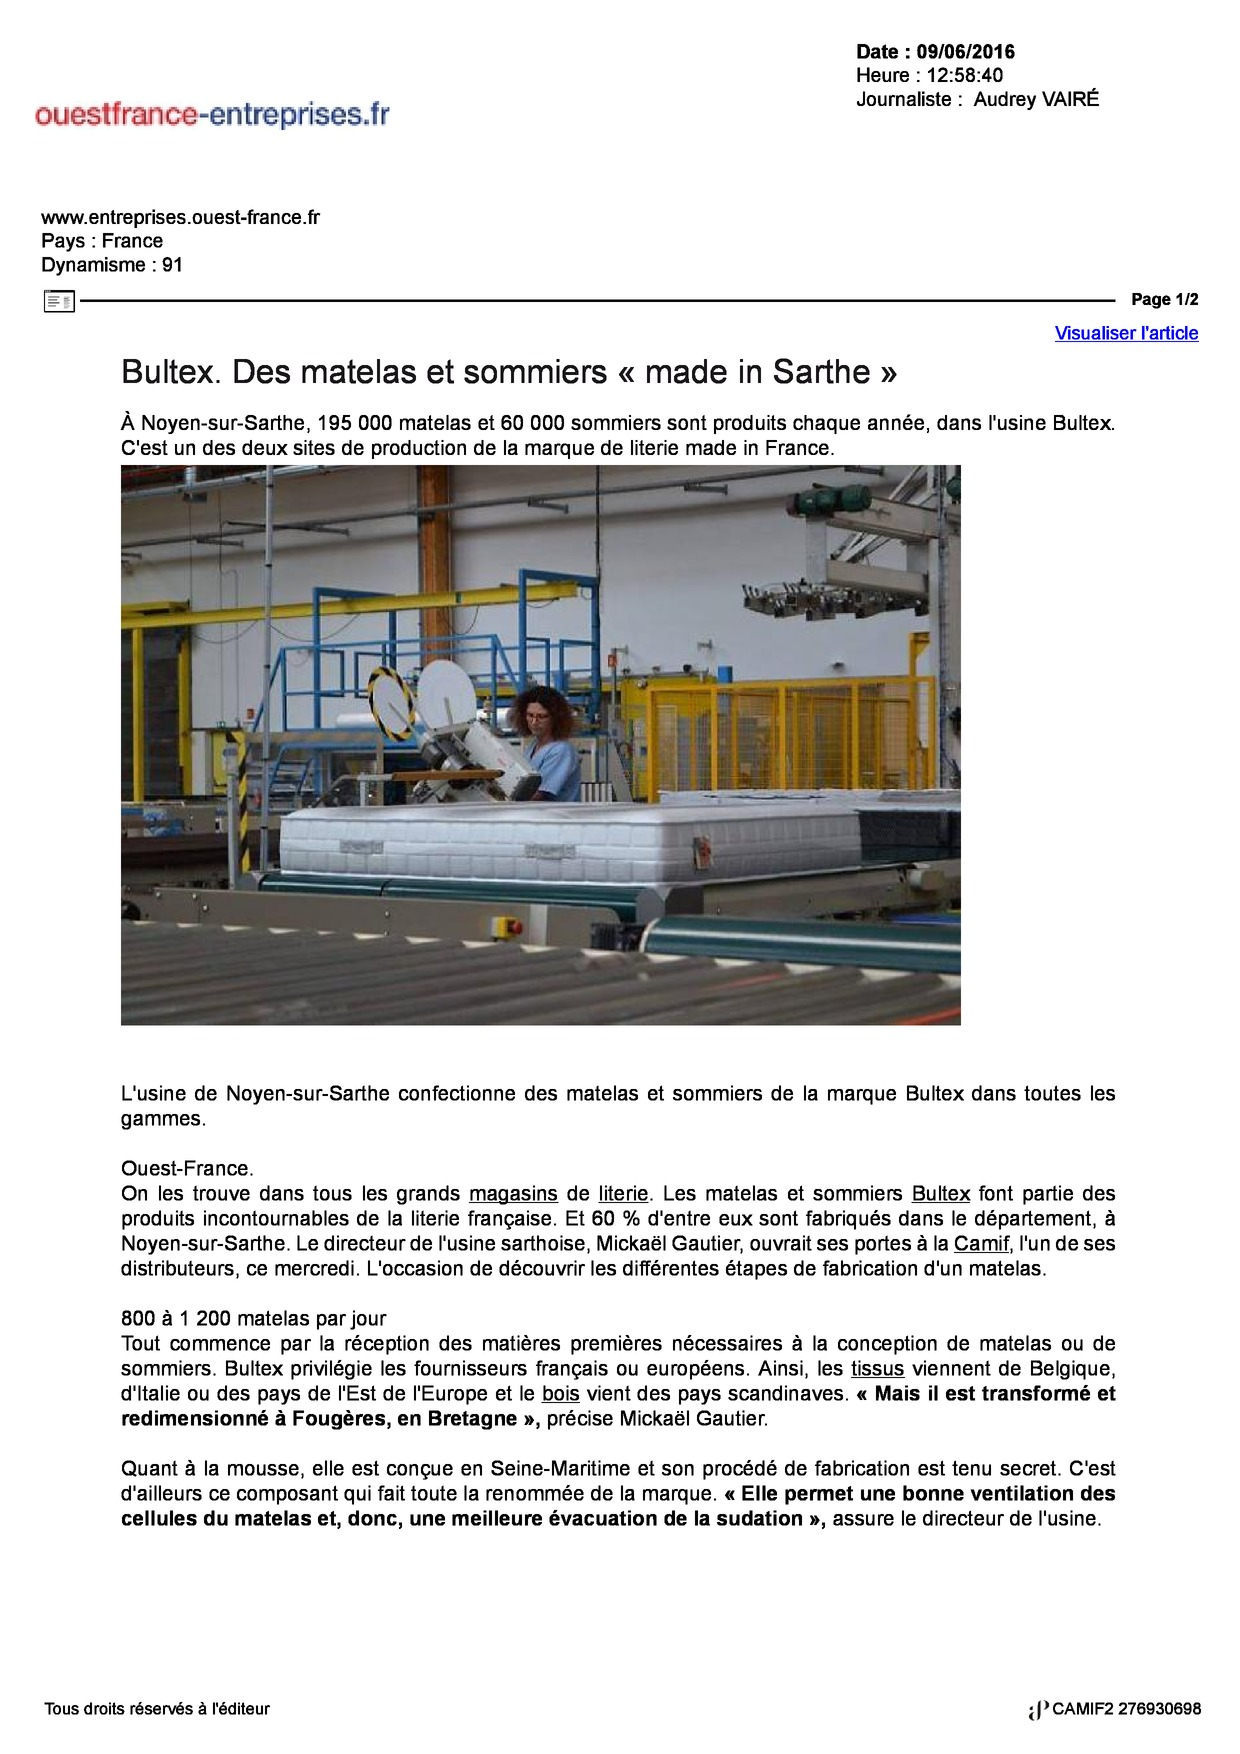 2016-06-095698www_entreprises_ouestfrance_f-page0